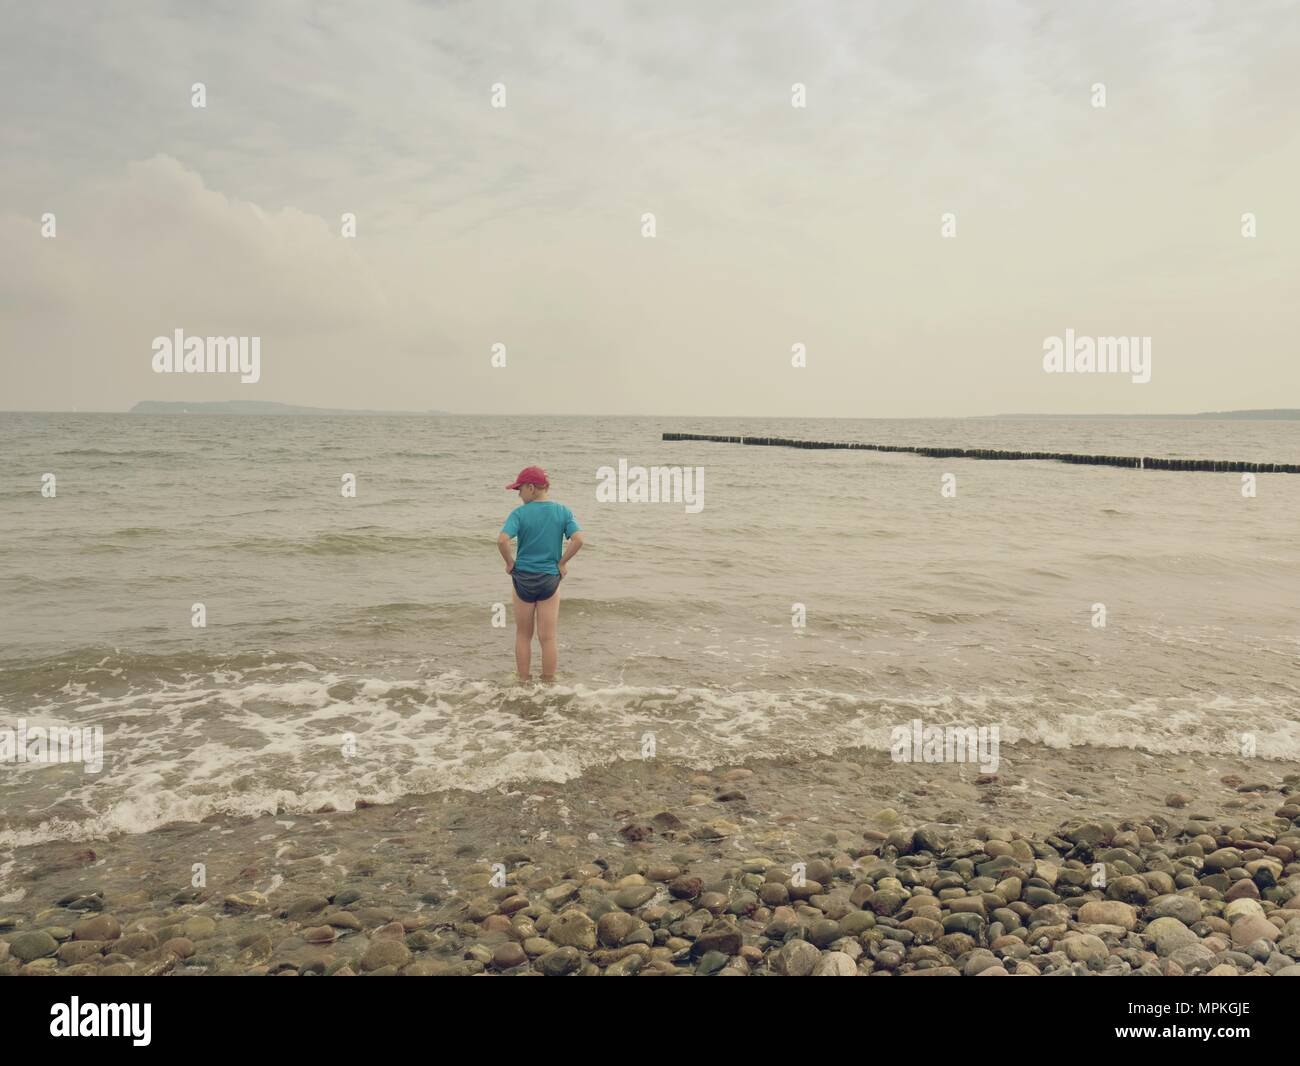 Boy in blue black sporty clothes stay in cold foamy sea. Blond hair  kid in  waves at stony beach.  Windy day, cloudy  blue sky on seascape - Stock Image